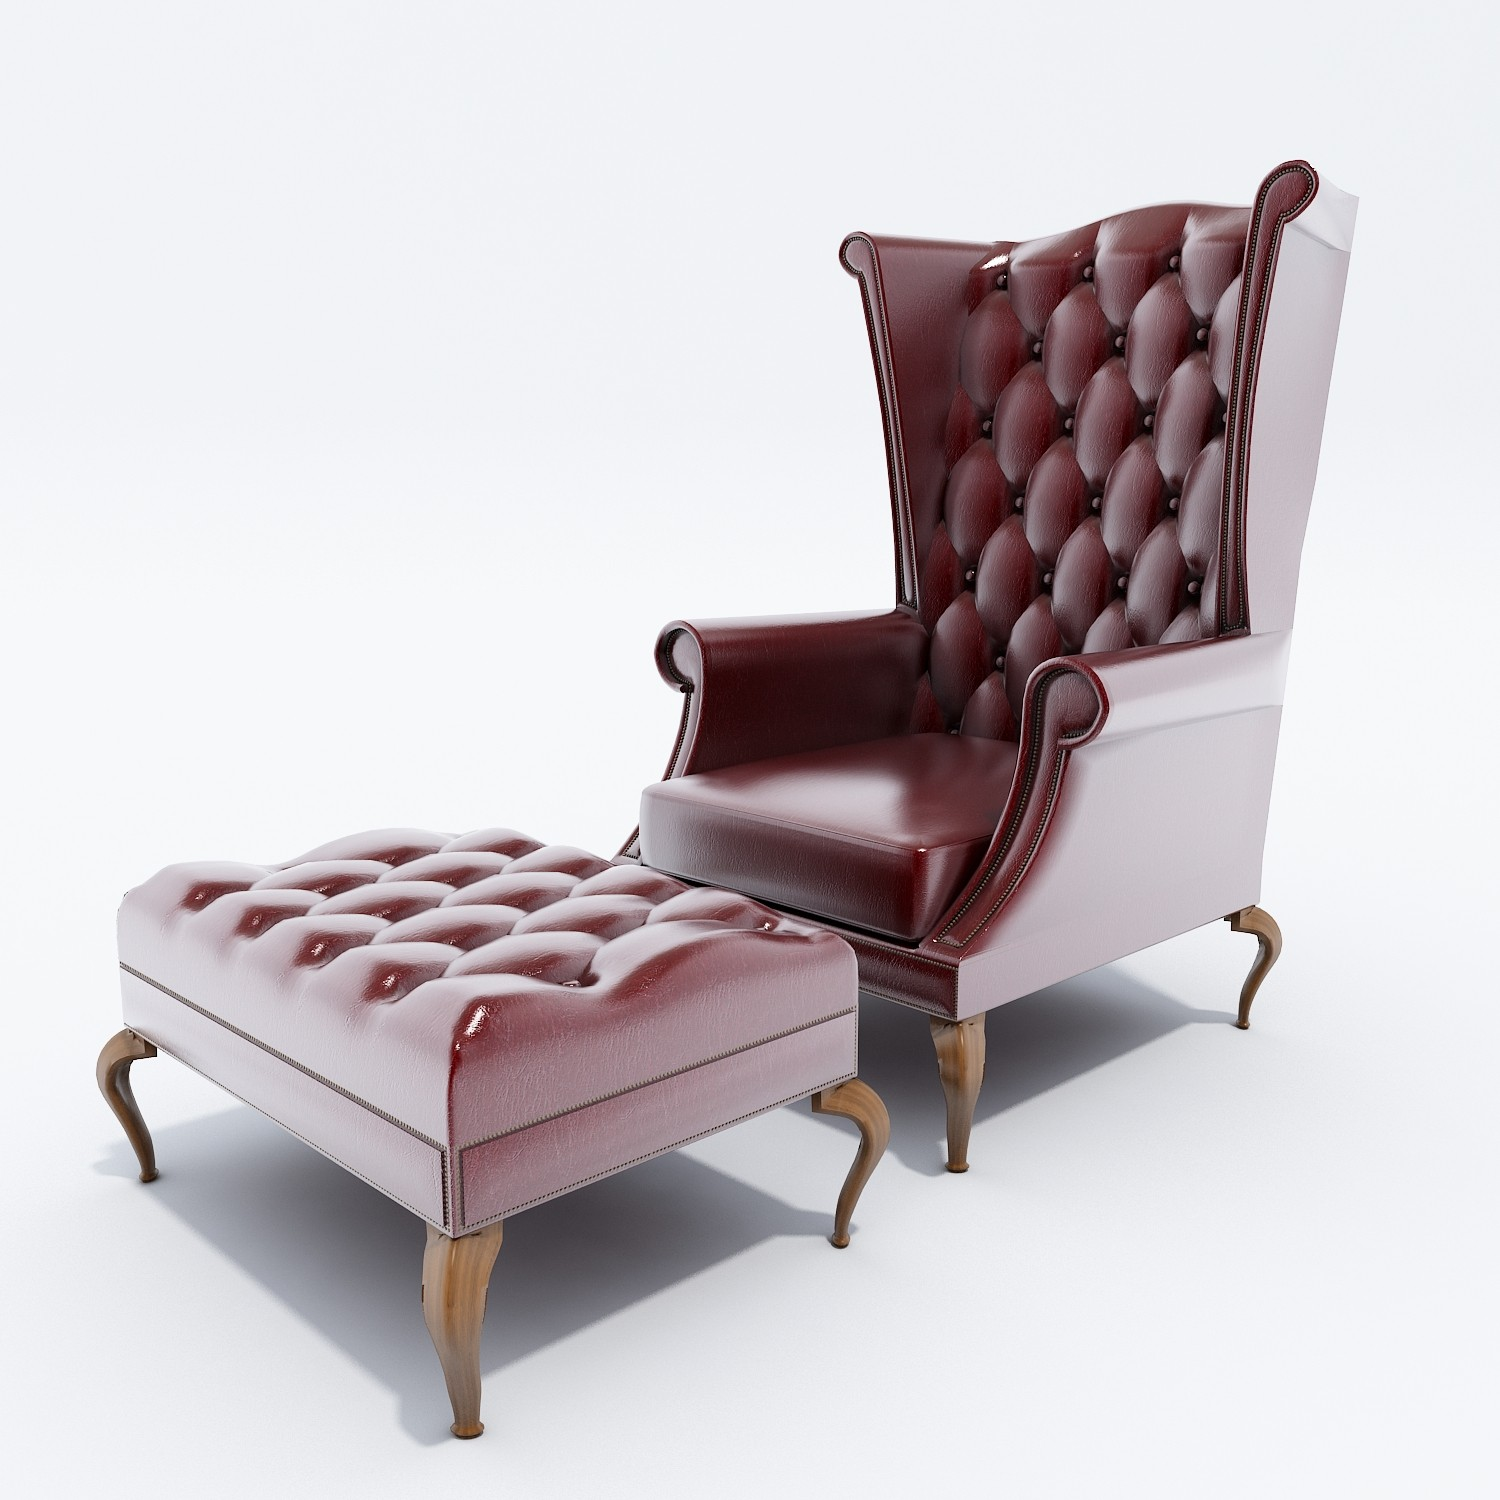 Luxury Queen Anne Chair (Image 7 of 11)